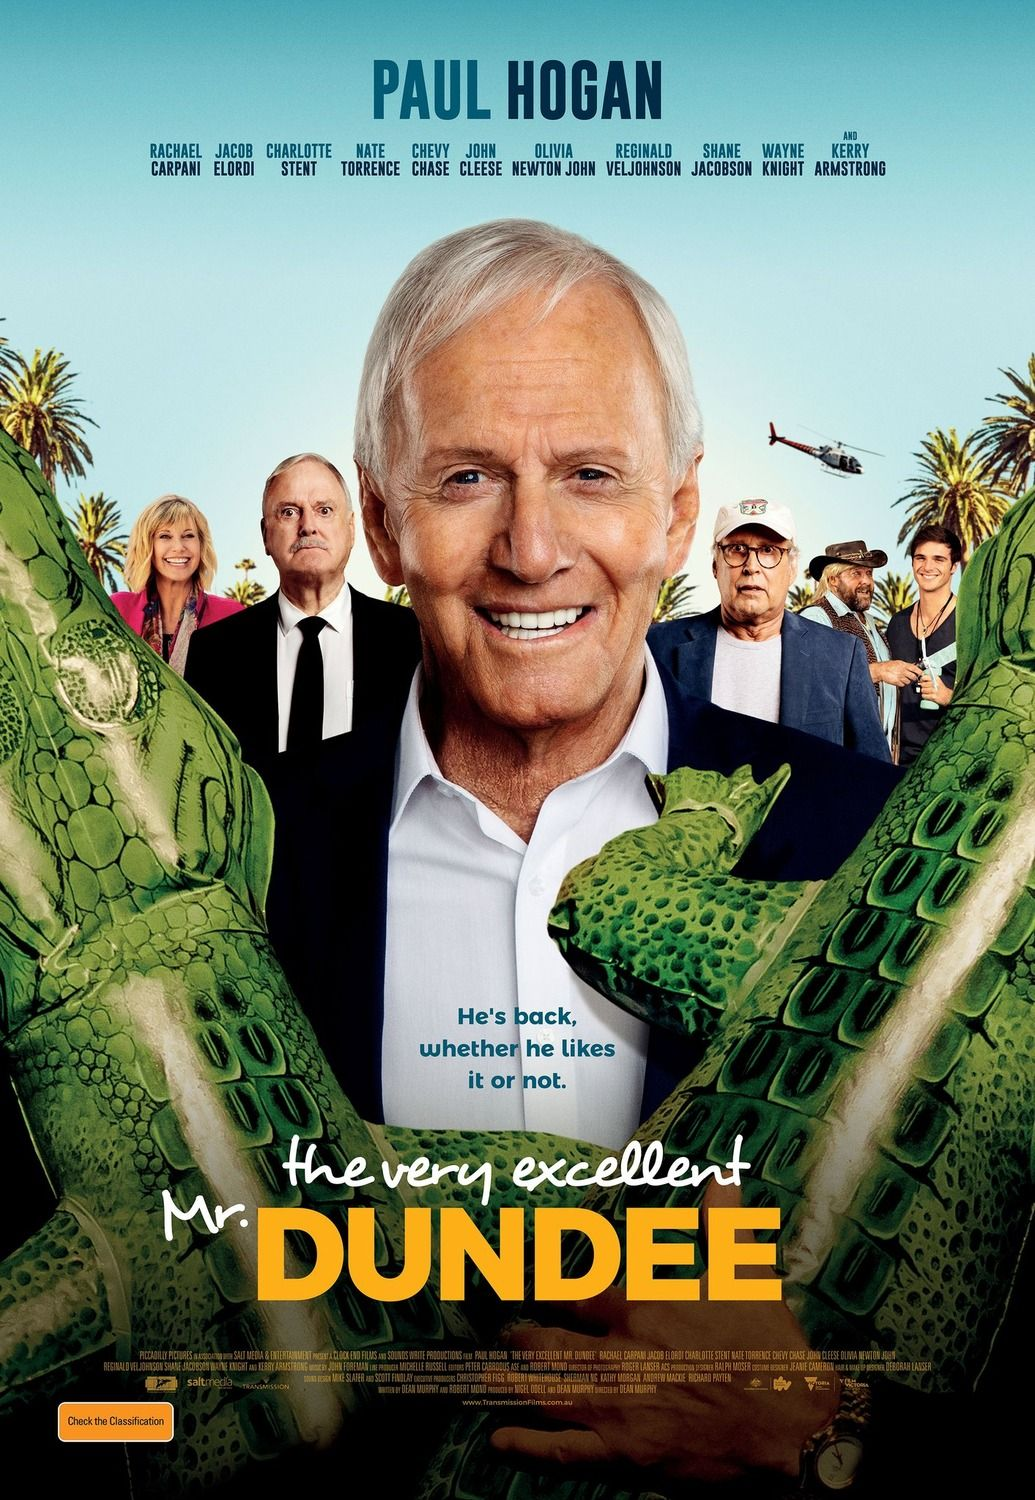 Paul Hogan Is Back In The Very Excellent Mr Dundee Trailer In 2020 Dundee Paul Hogan Luke Hemsworth